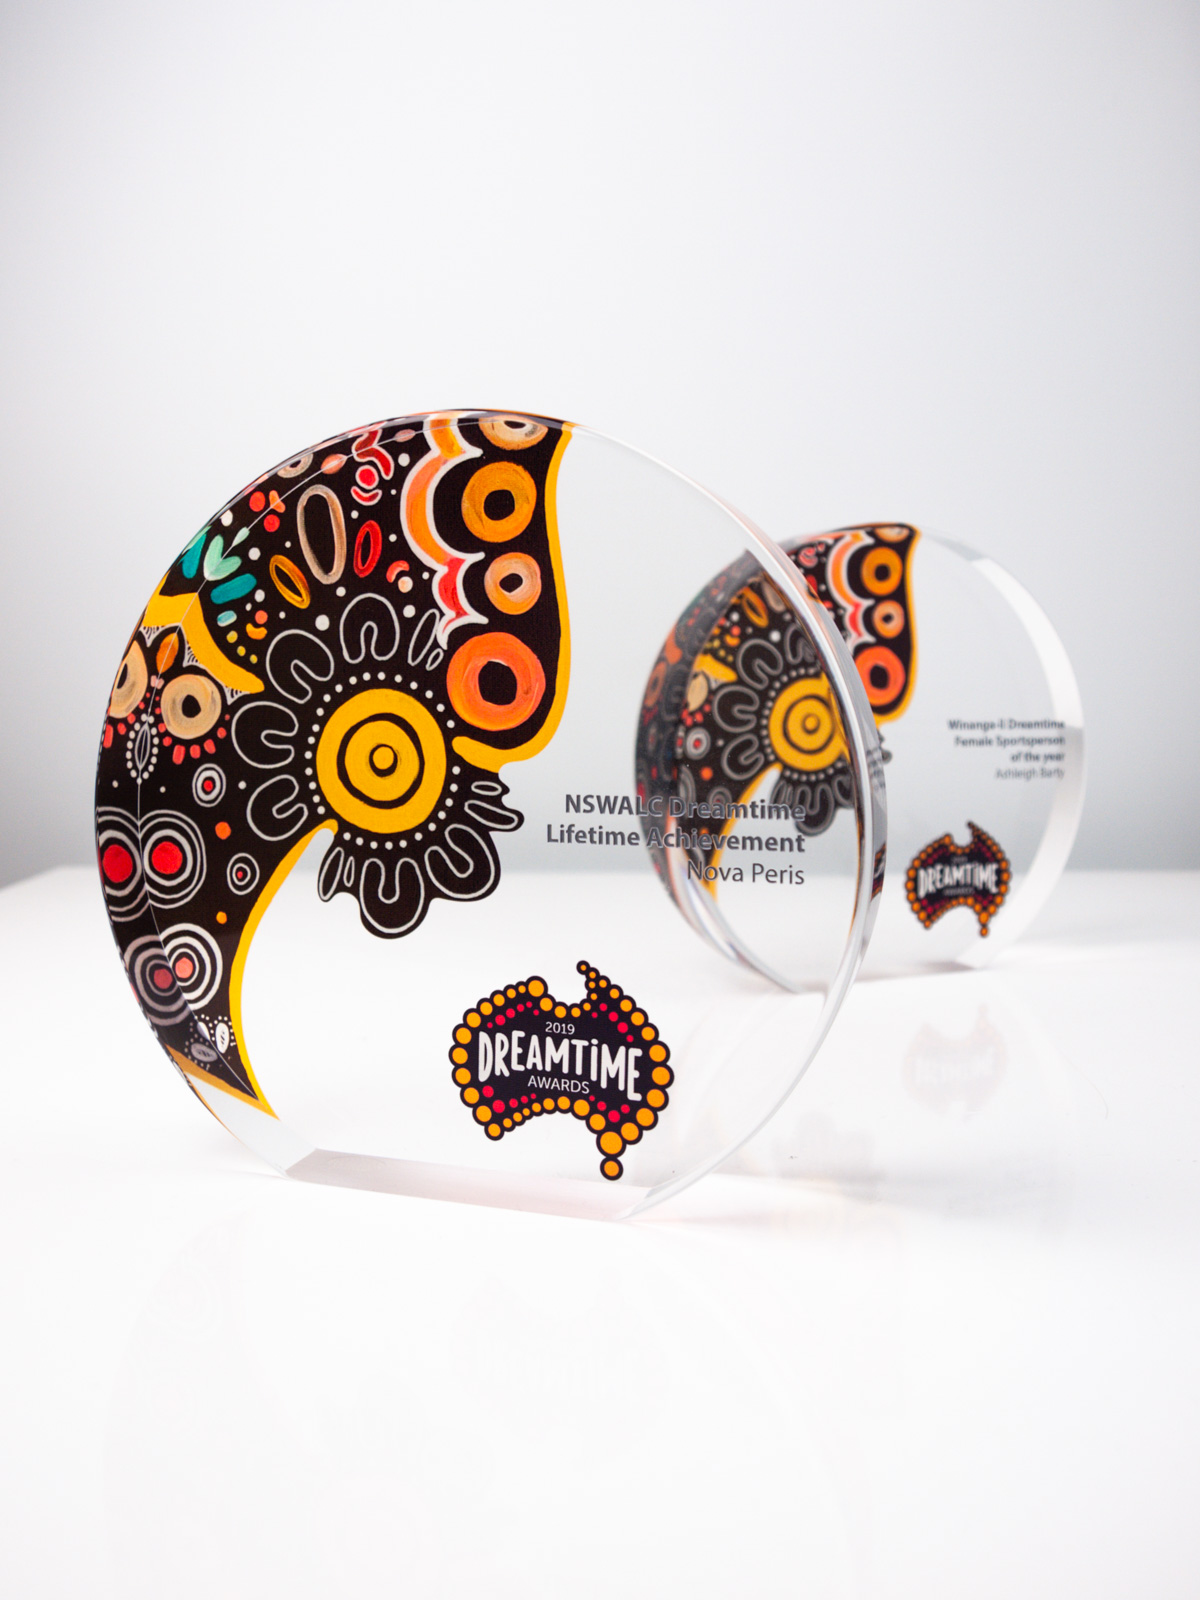 Dreamtime Acrylic Awards